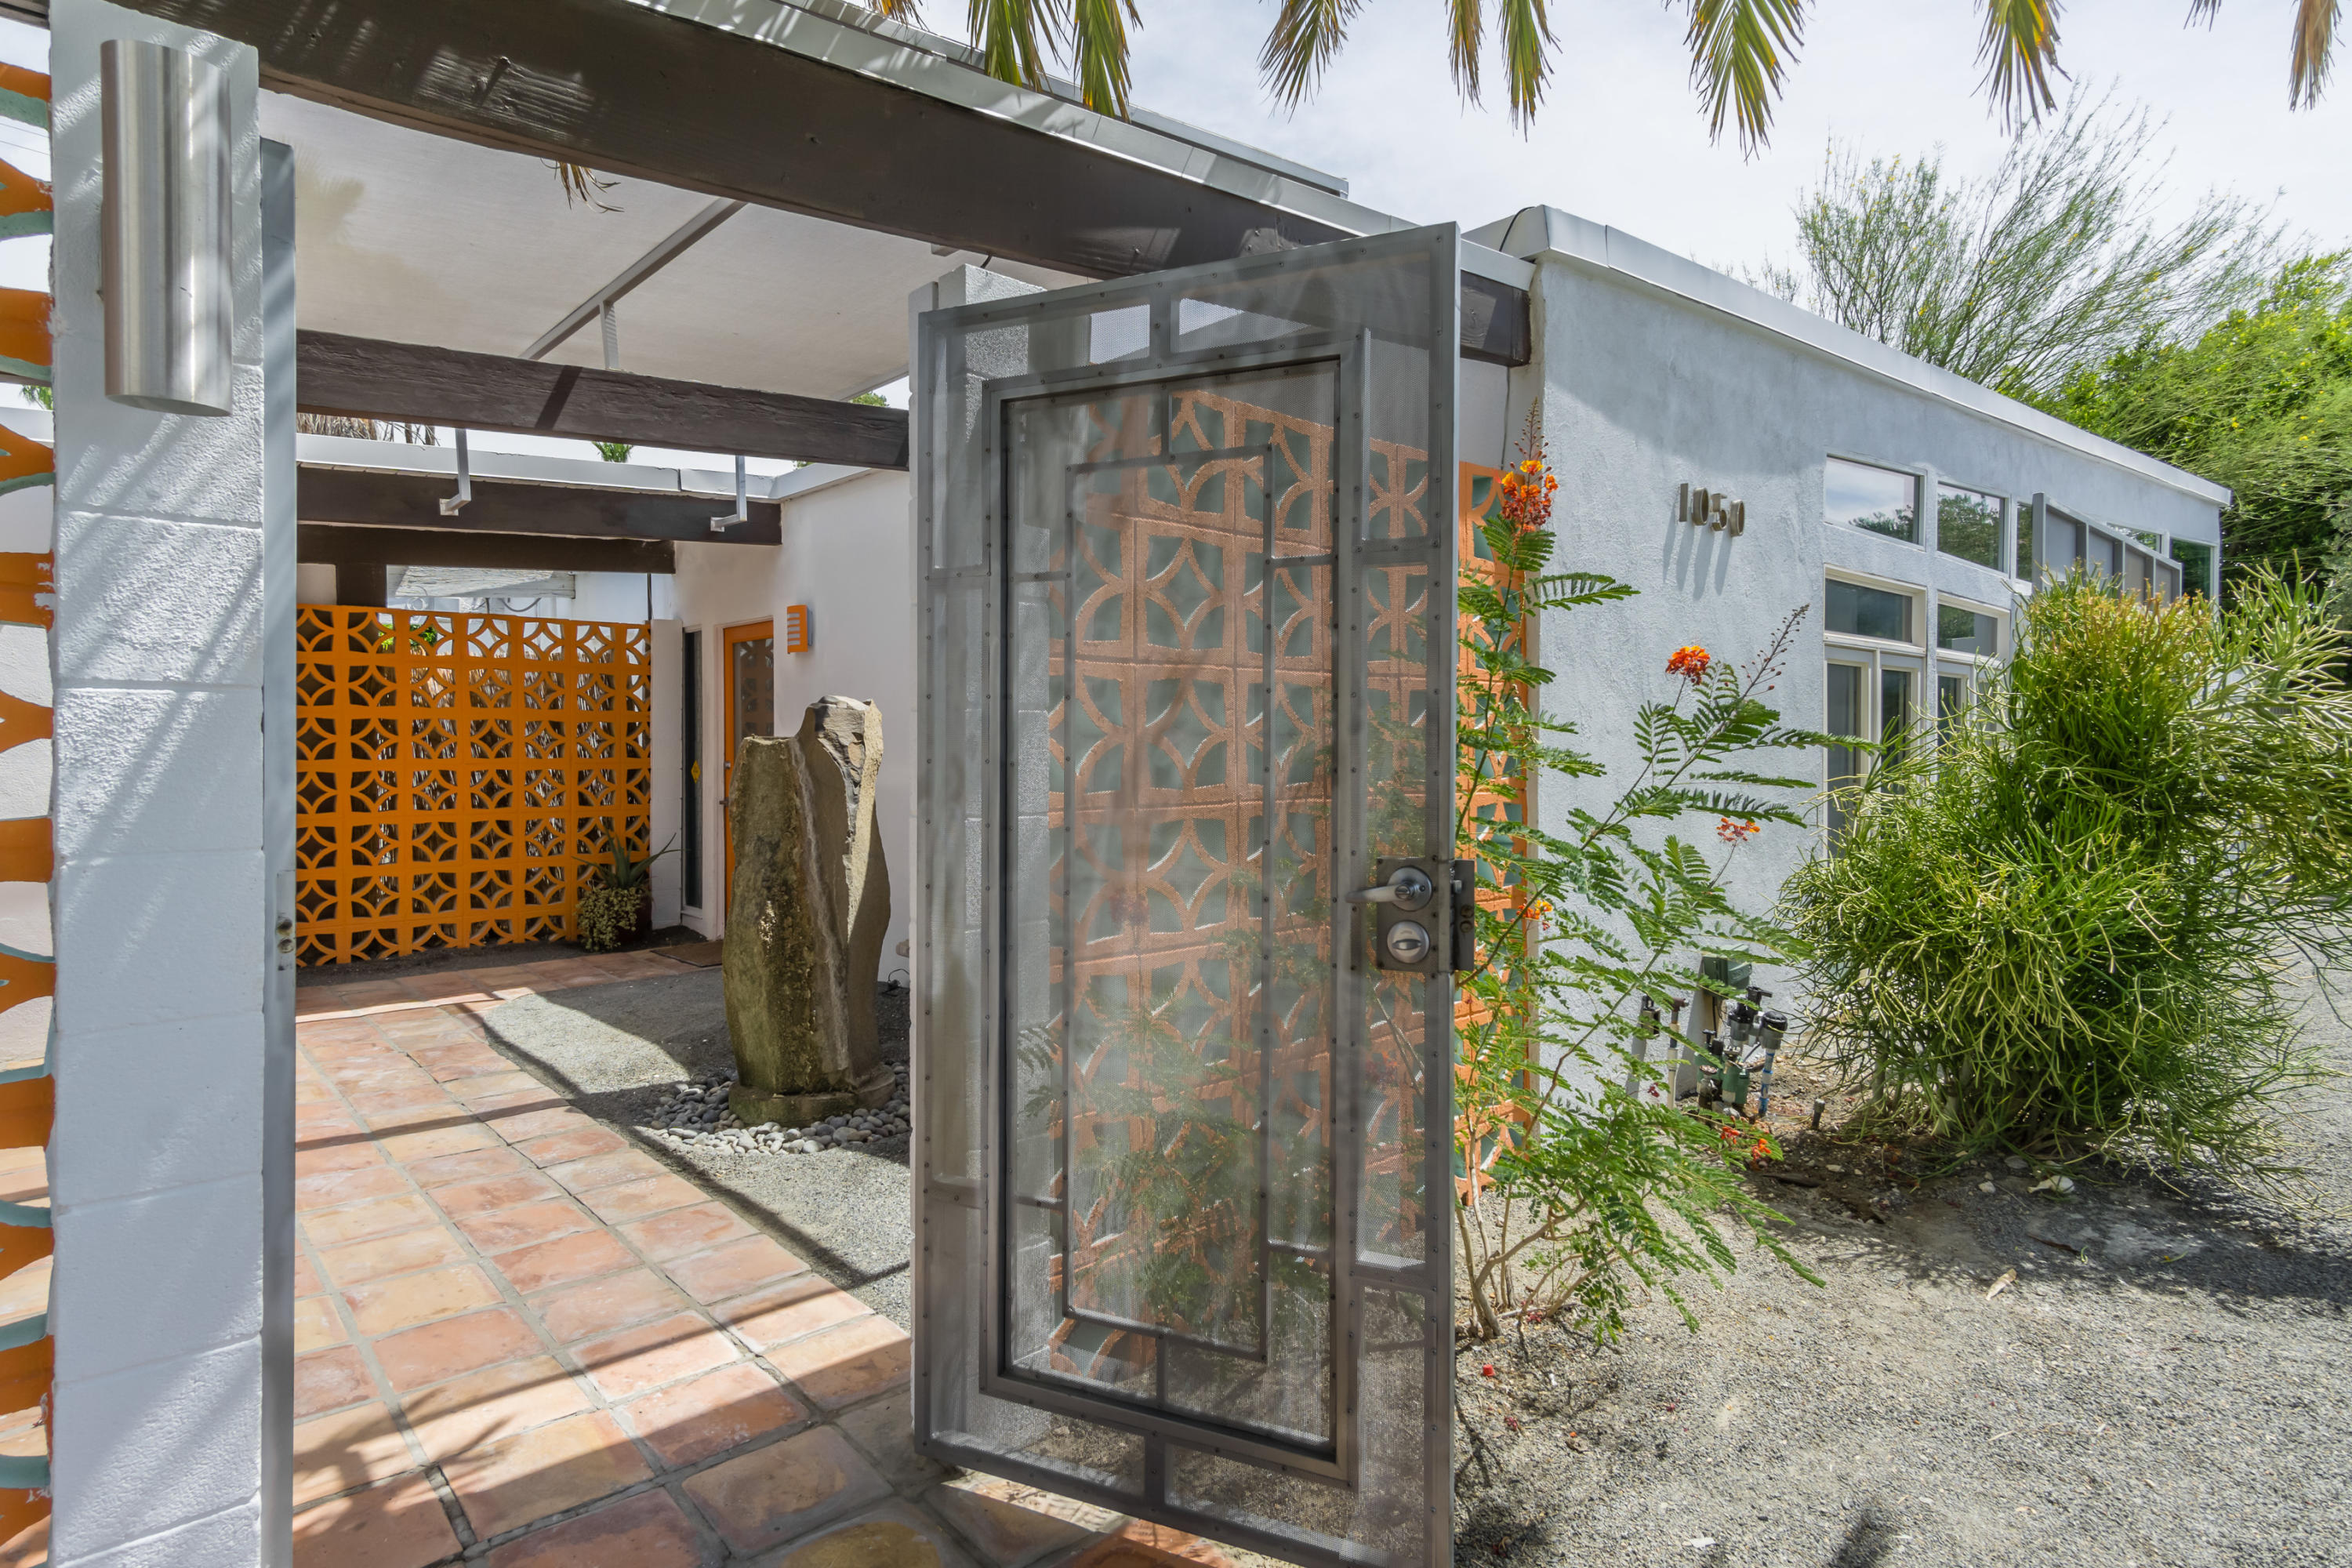 1050 E Racquet Club Road, Palm Springs, California 92262, 3 Bedrooms Bedrooms, ,3 BathroomsBathrooms,Residential,For Sale,1050 E Racquet Club Road,219045200